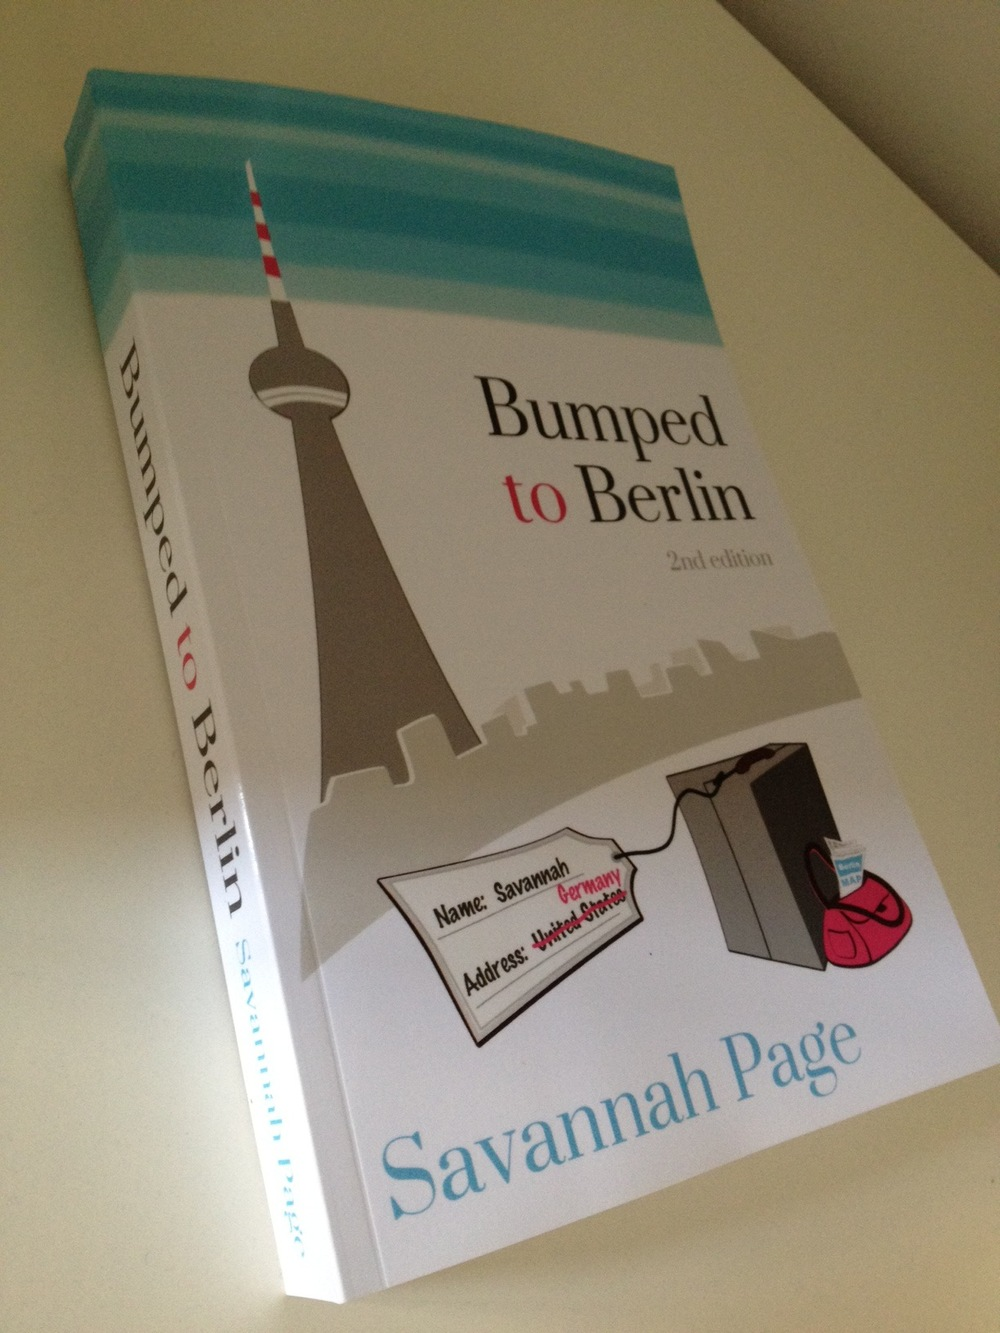 New Bumped to Berlin Edition Out - Savannah Page